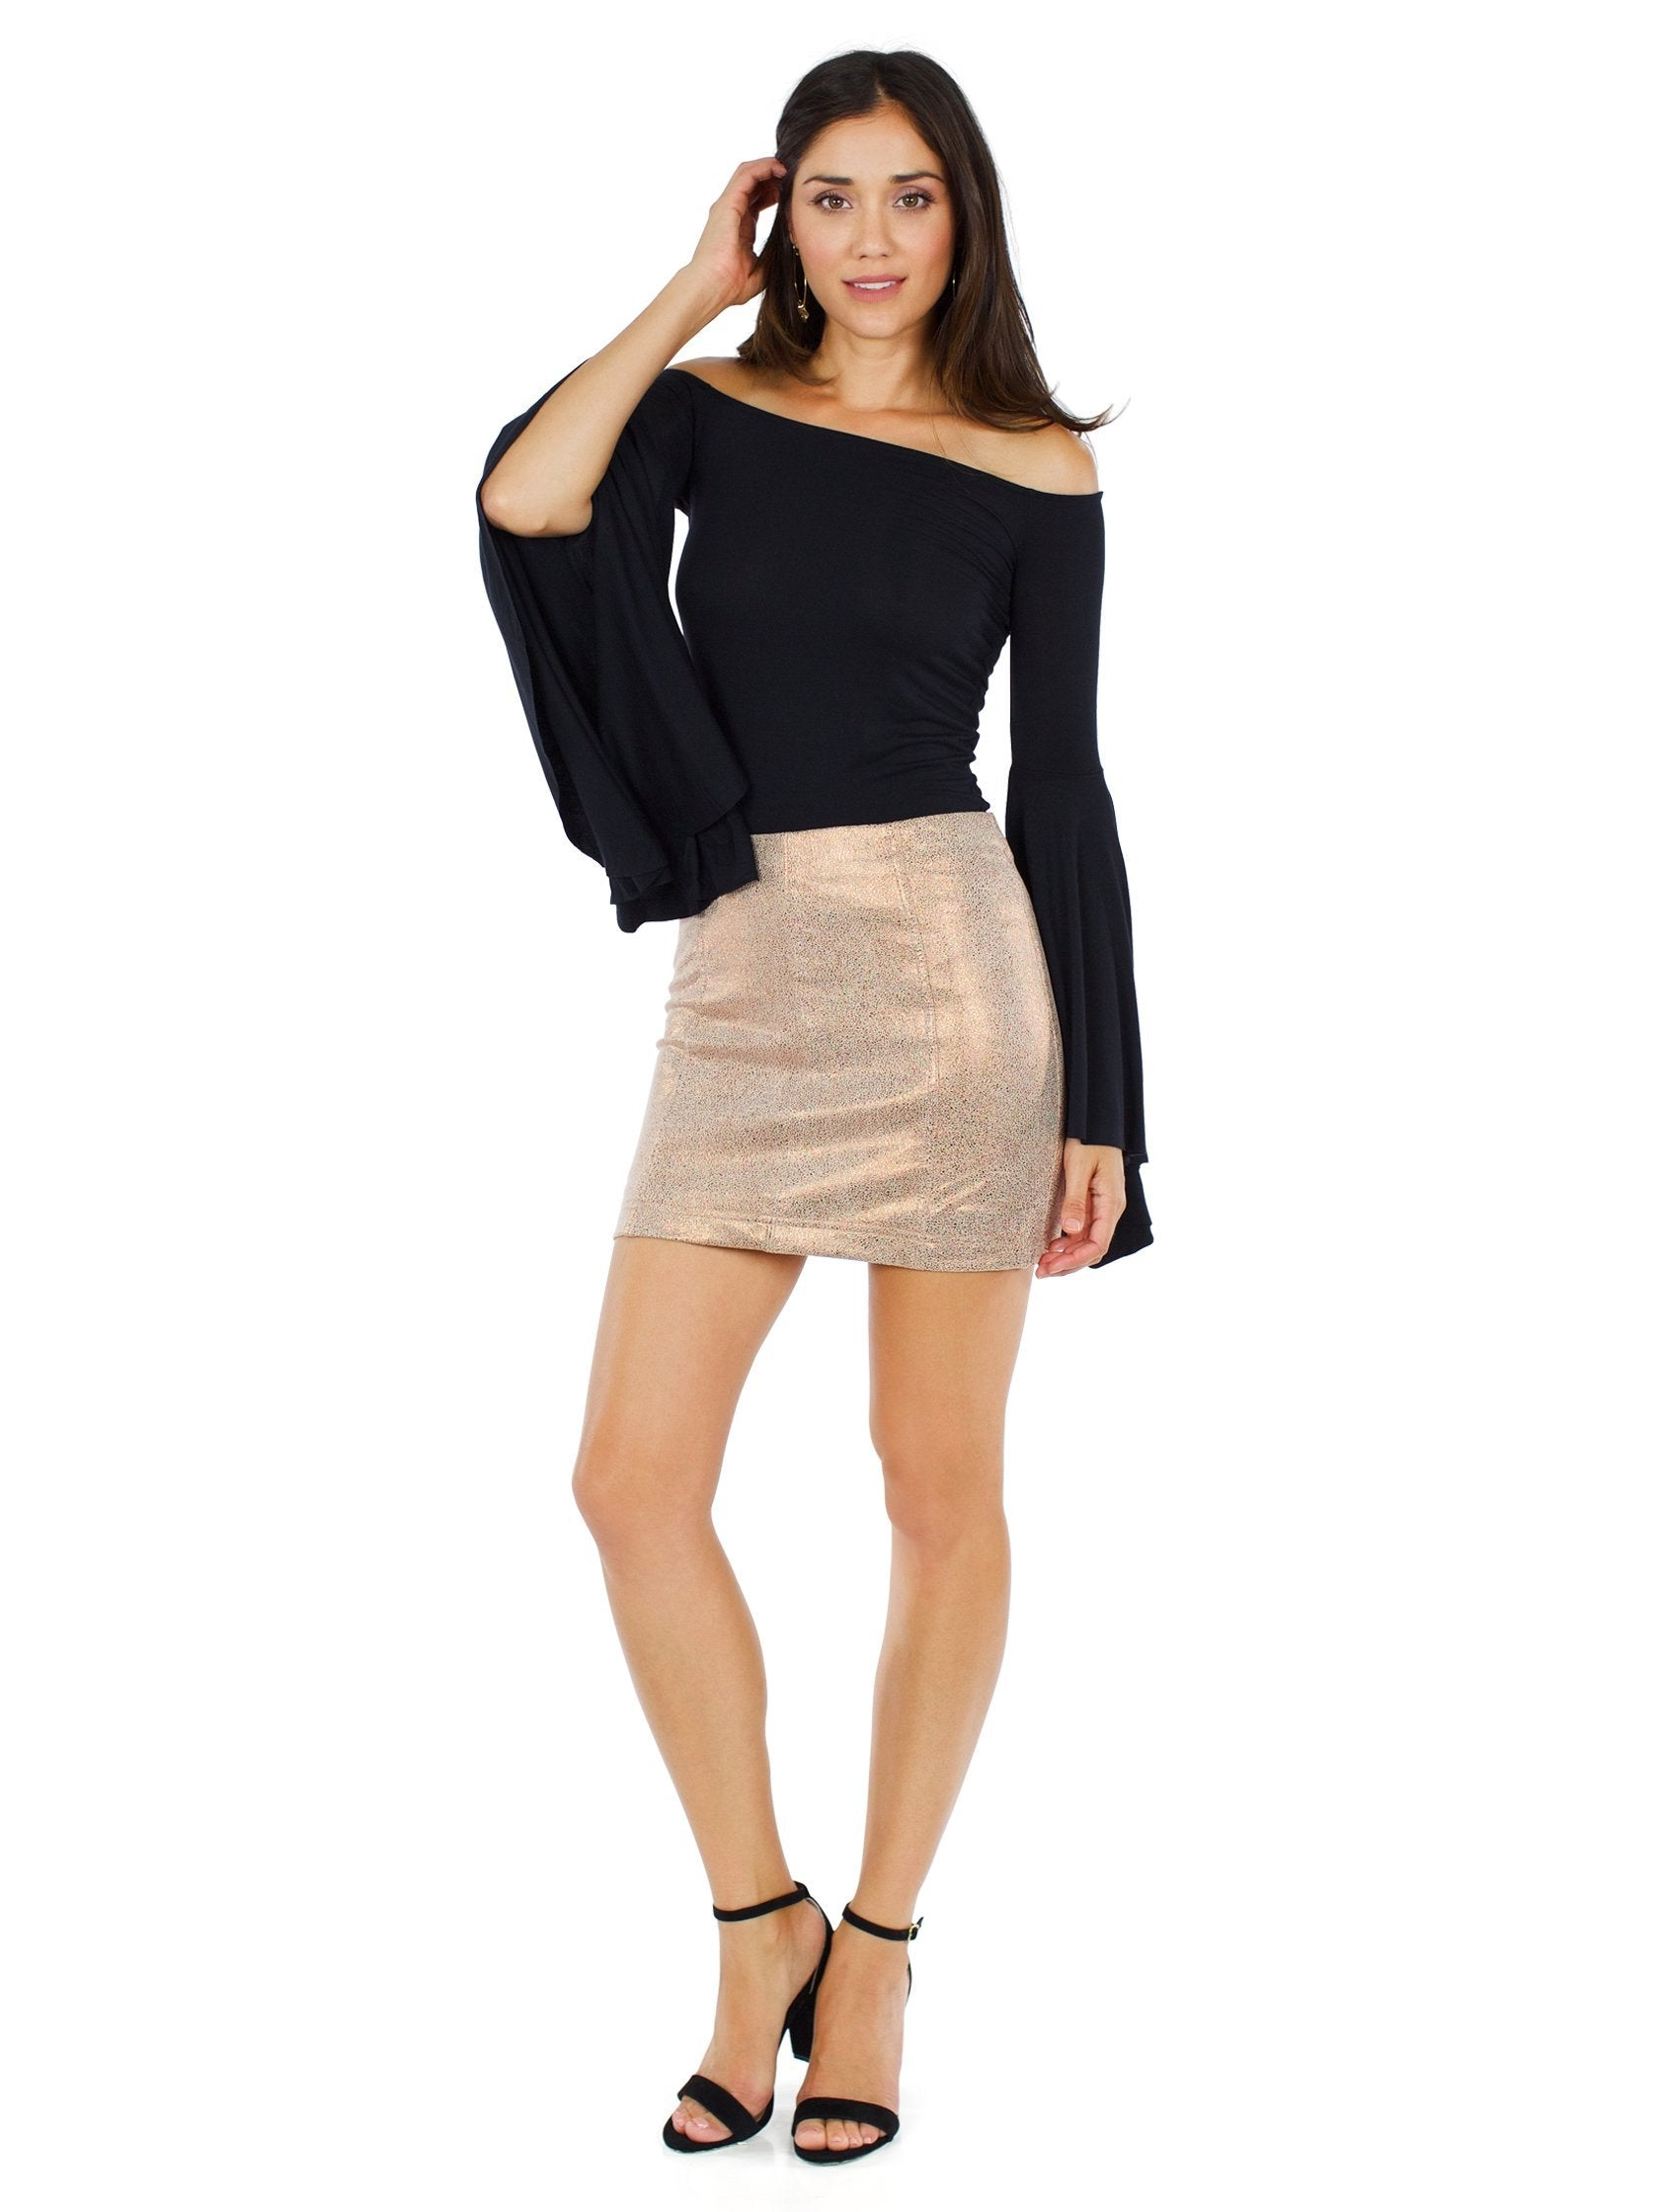 Girl outfit in a skirt rental from Free People called Modern Femme Metallic Rose Gold Suede Mini Skirt